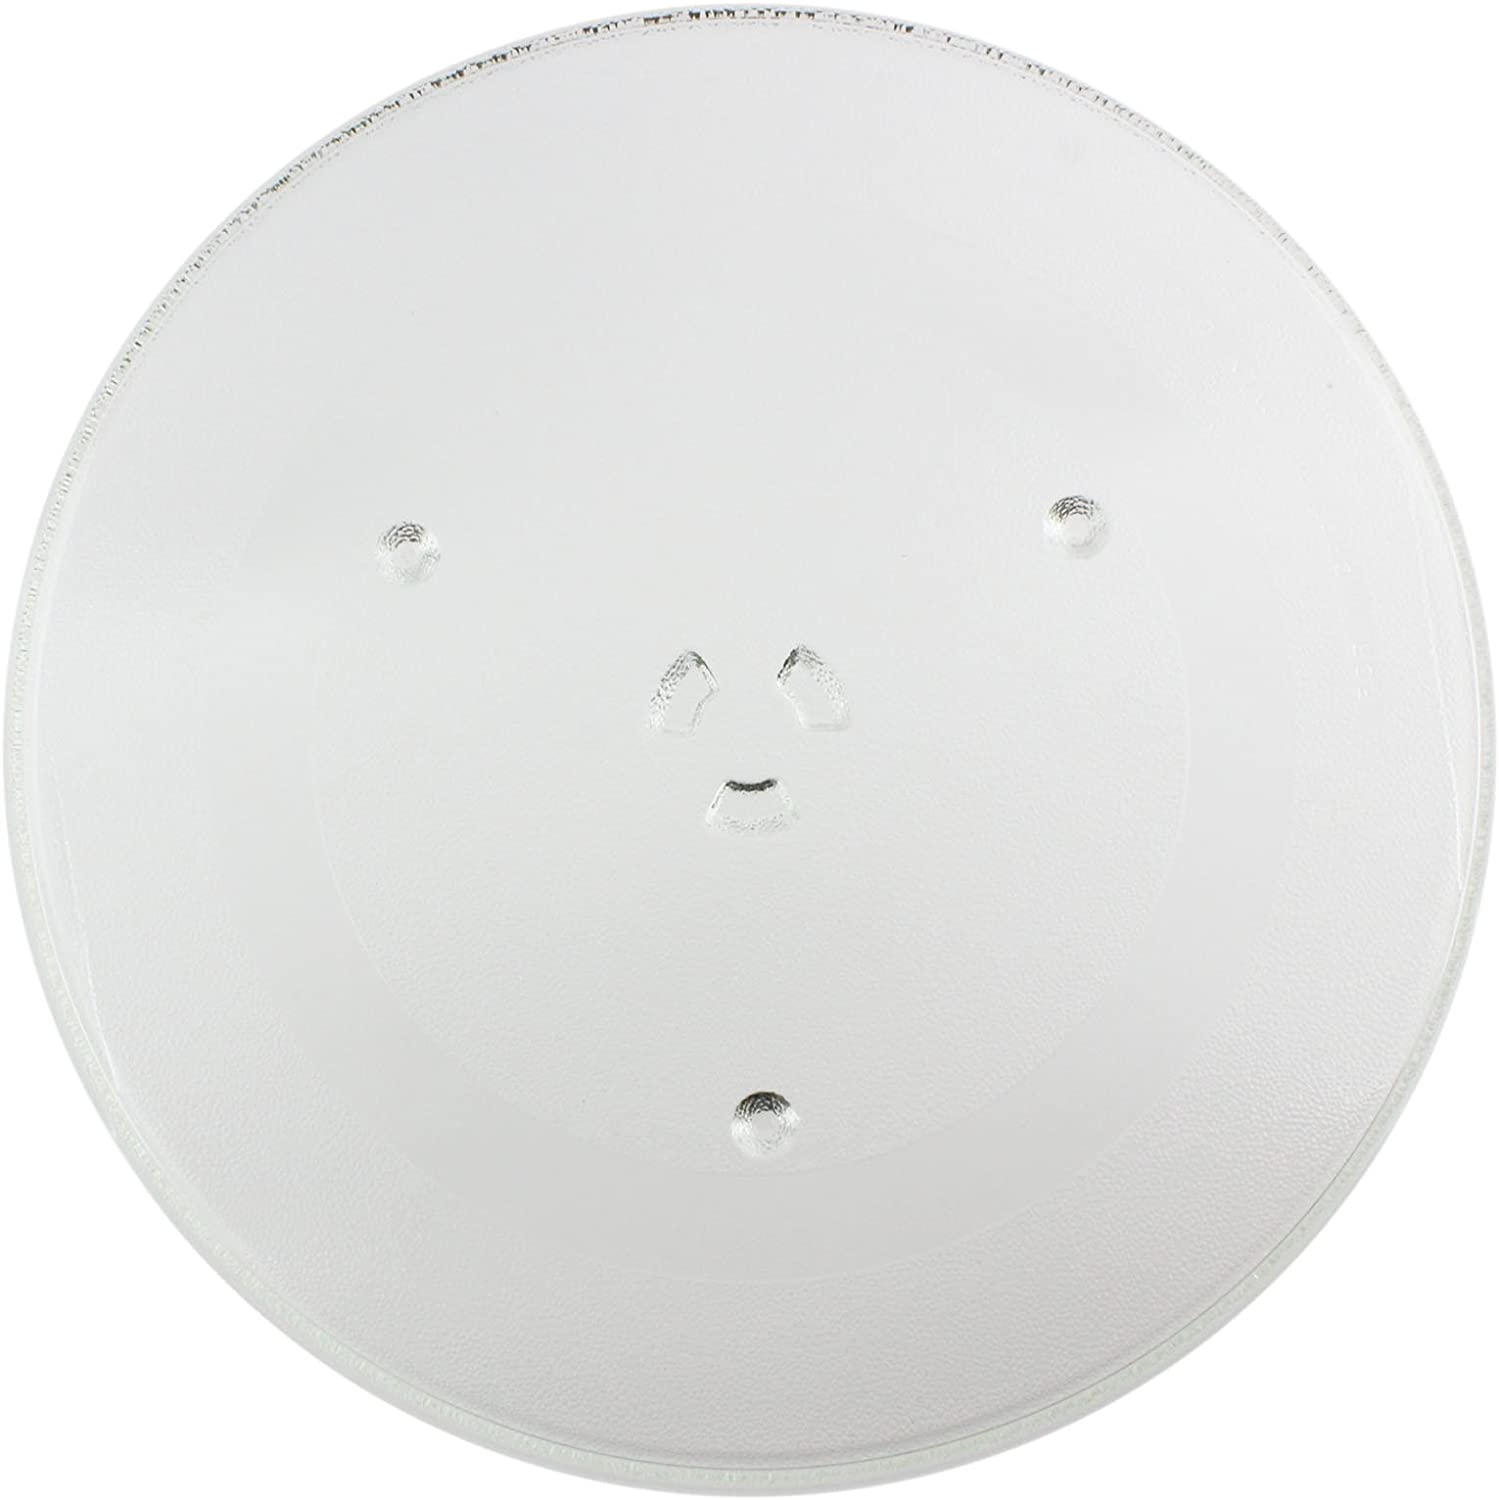 Genuine Samsung M1736N ME732K-S Microwave Turntable Glass Plate (255mm / 10) by Samsung